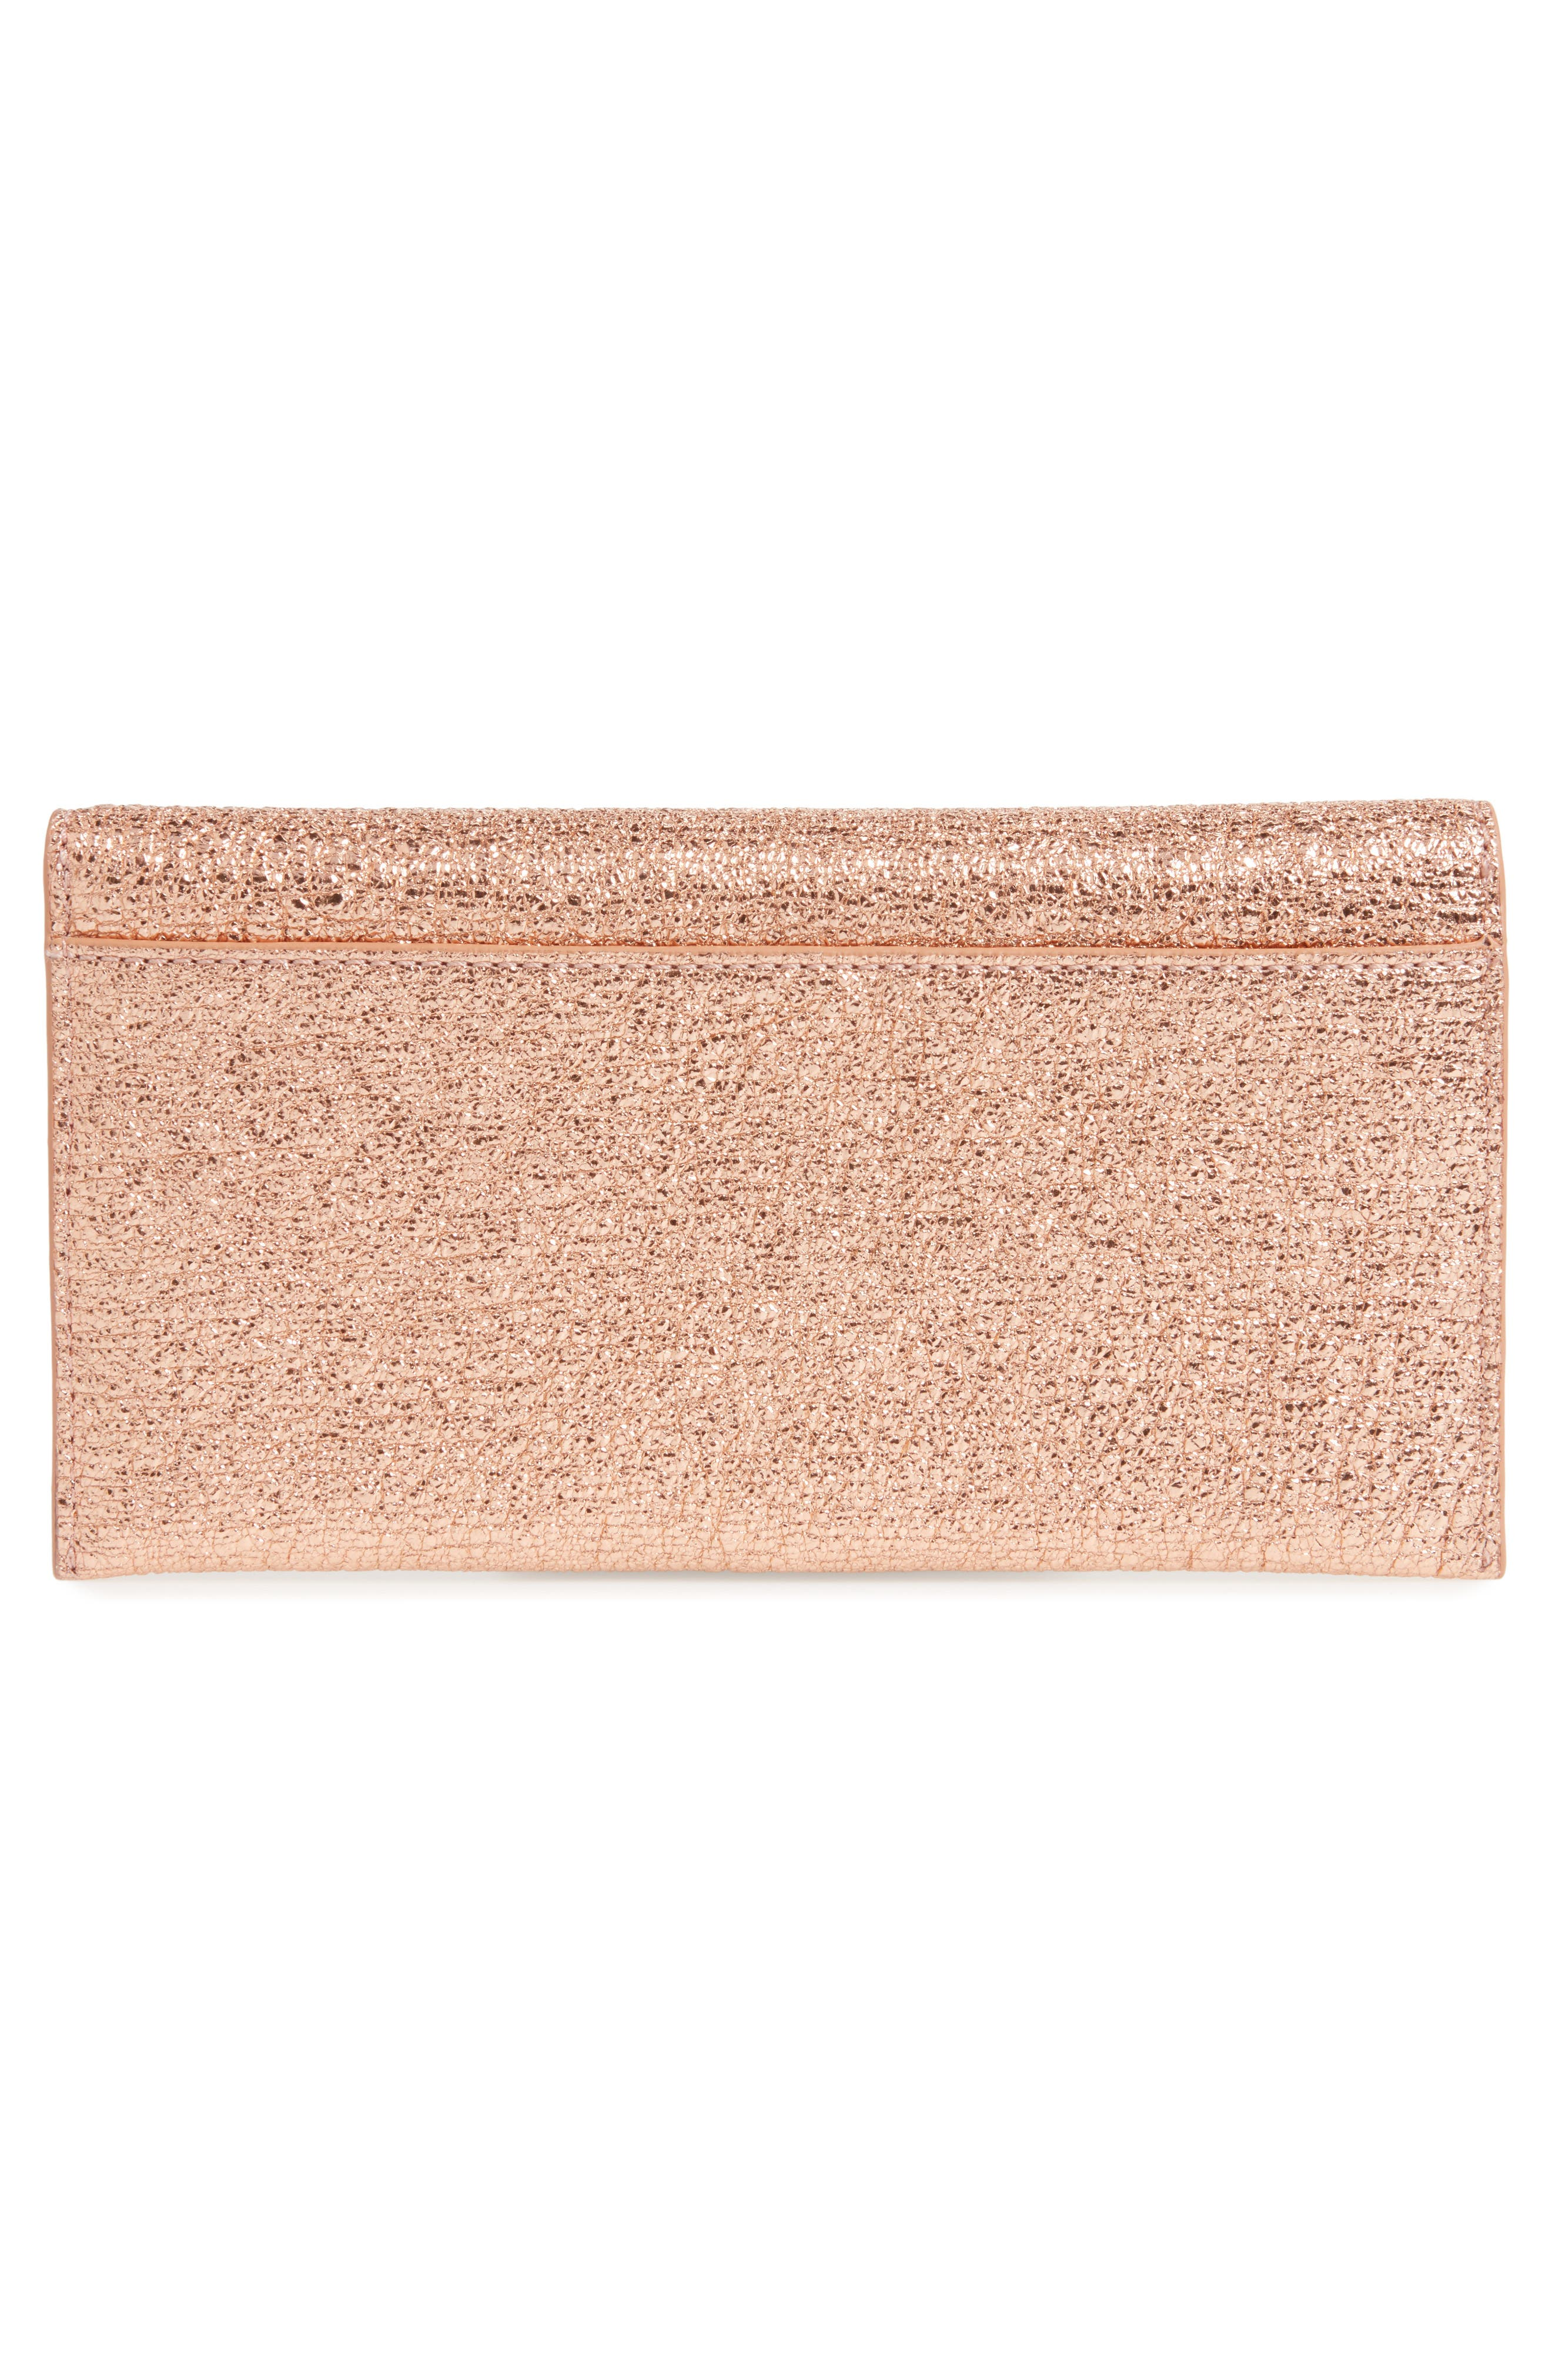 Everything Leather Wallet,                             Alternate thumbnail 4, color,                             Topaz